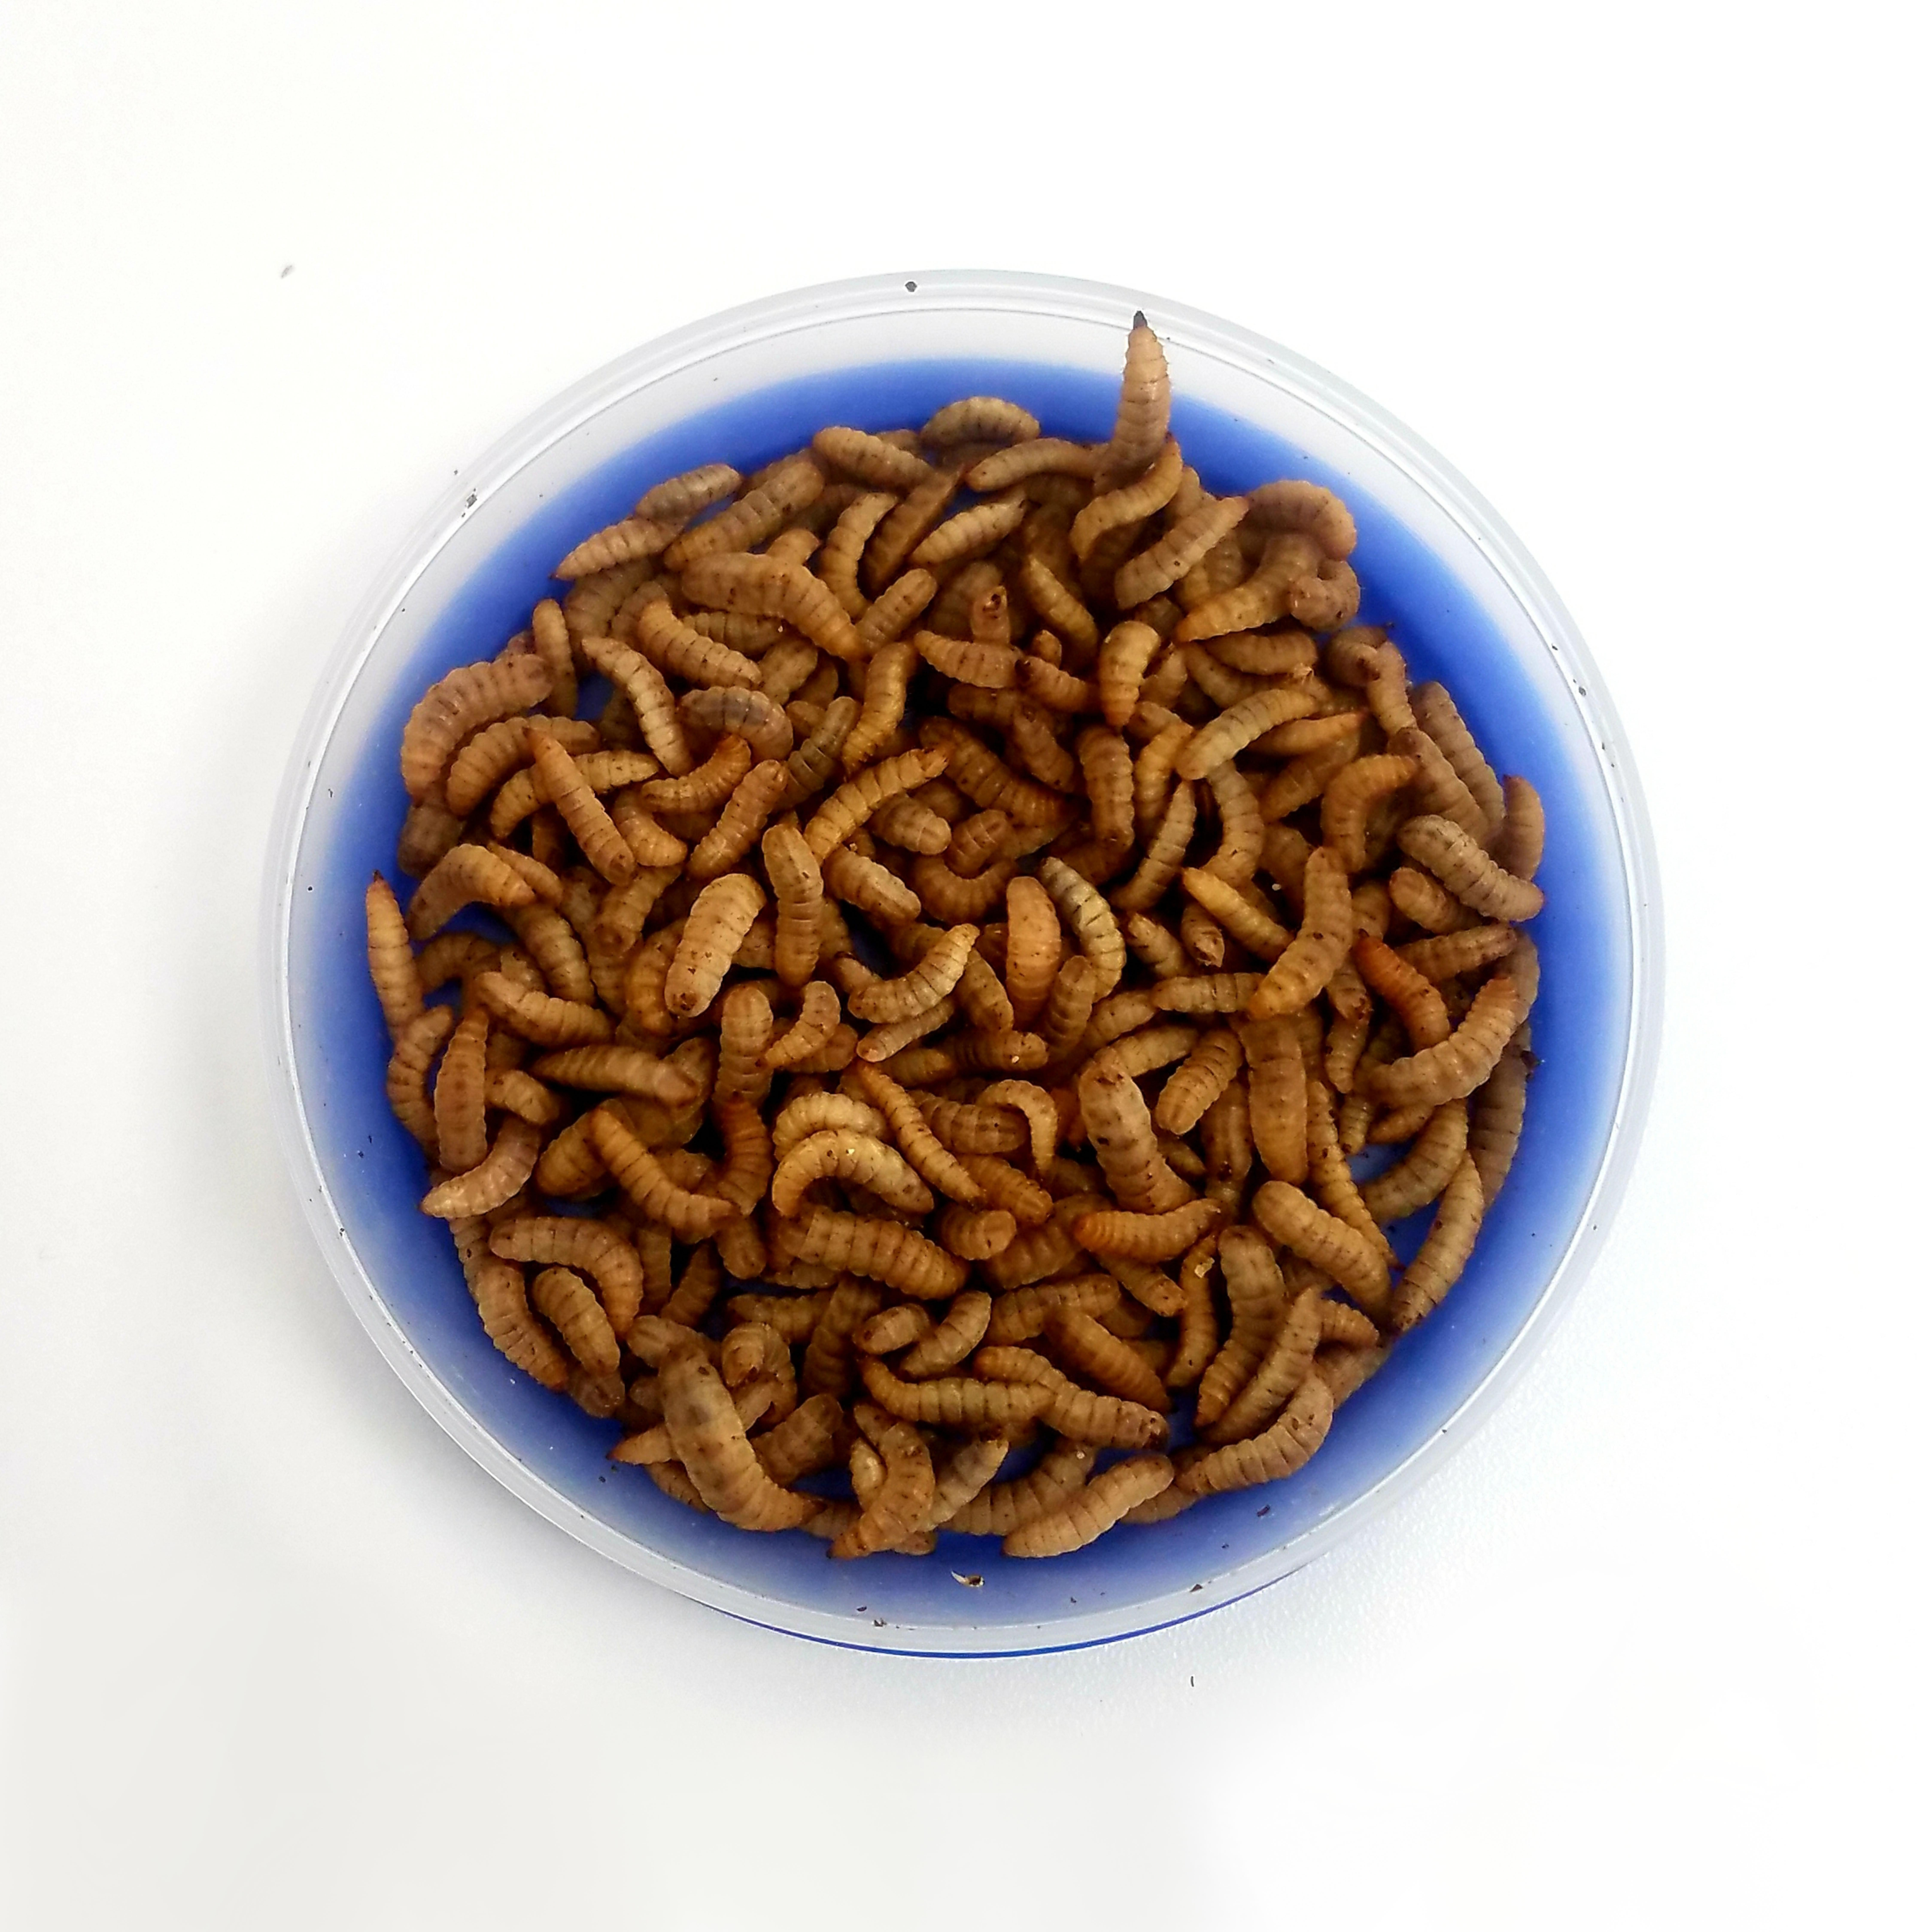 Large Live Calci worms